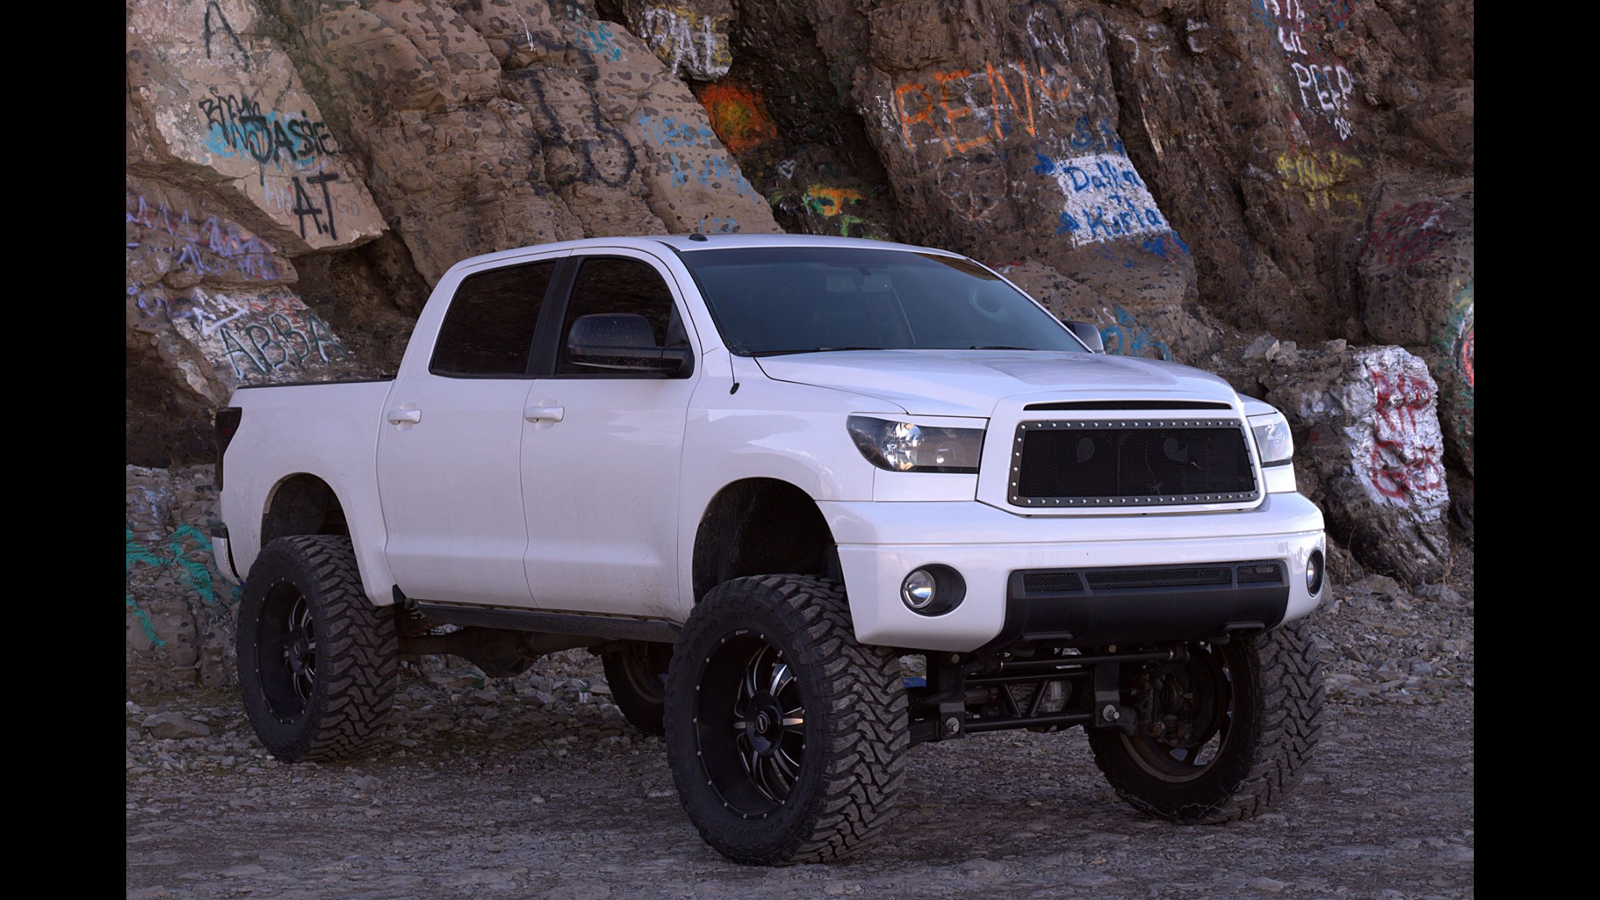 Tundra Trd Pro For Sale >> nicely modified 2010 Toyota Tundra custom for sale